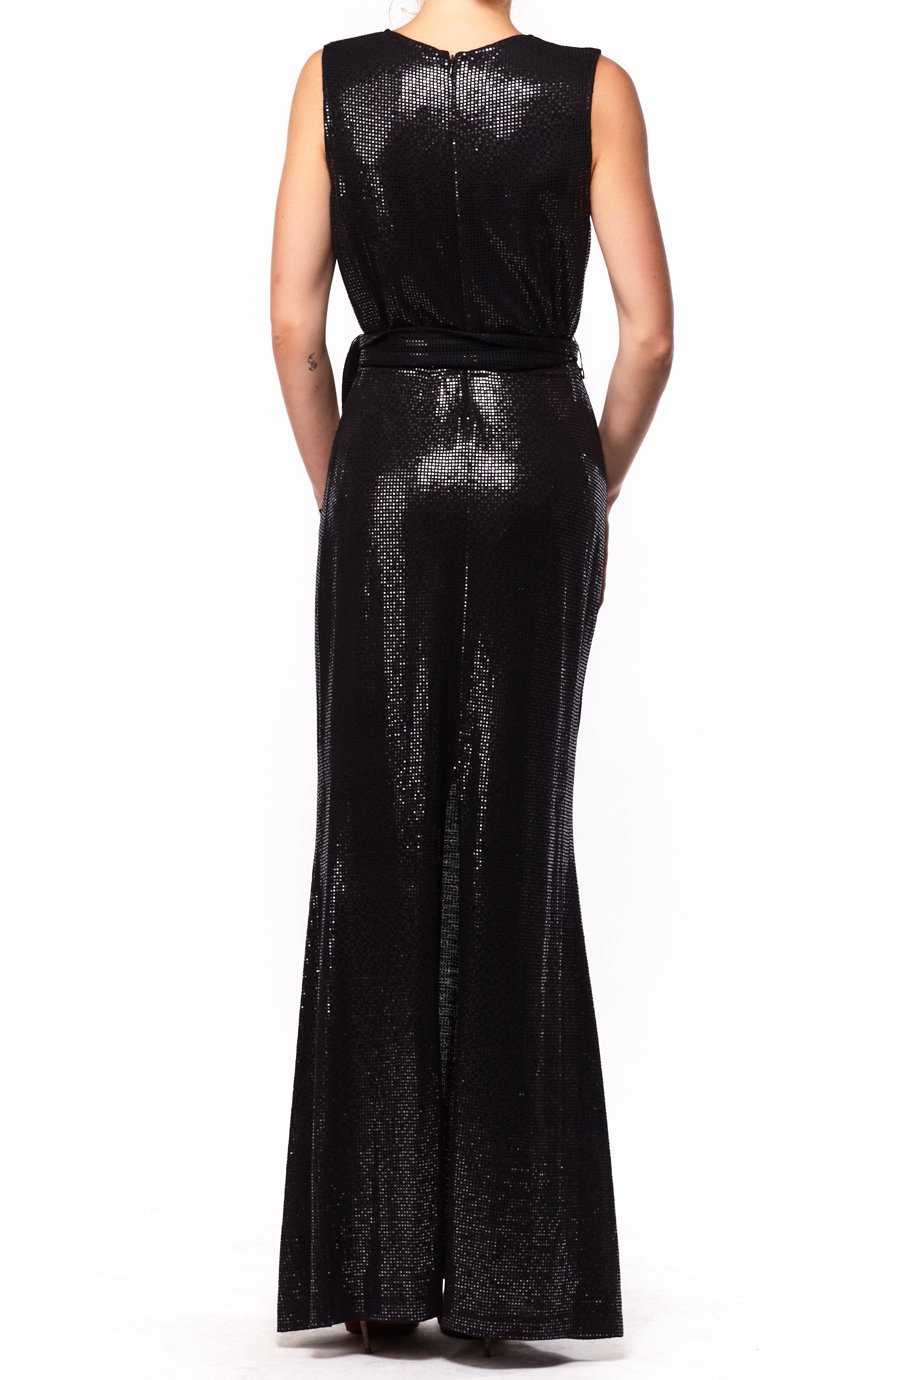 St John Black Halter Neck Dress with Silver Accents